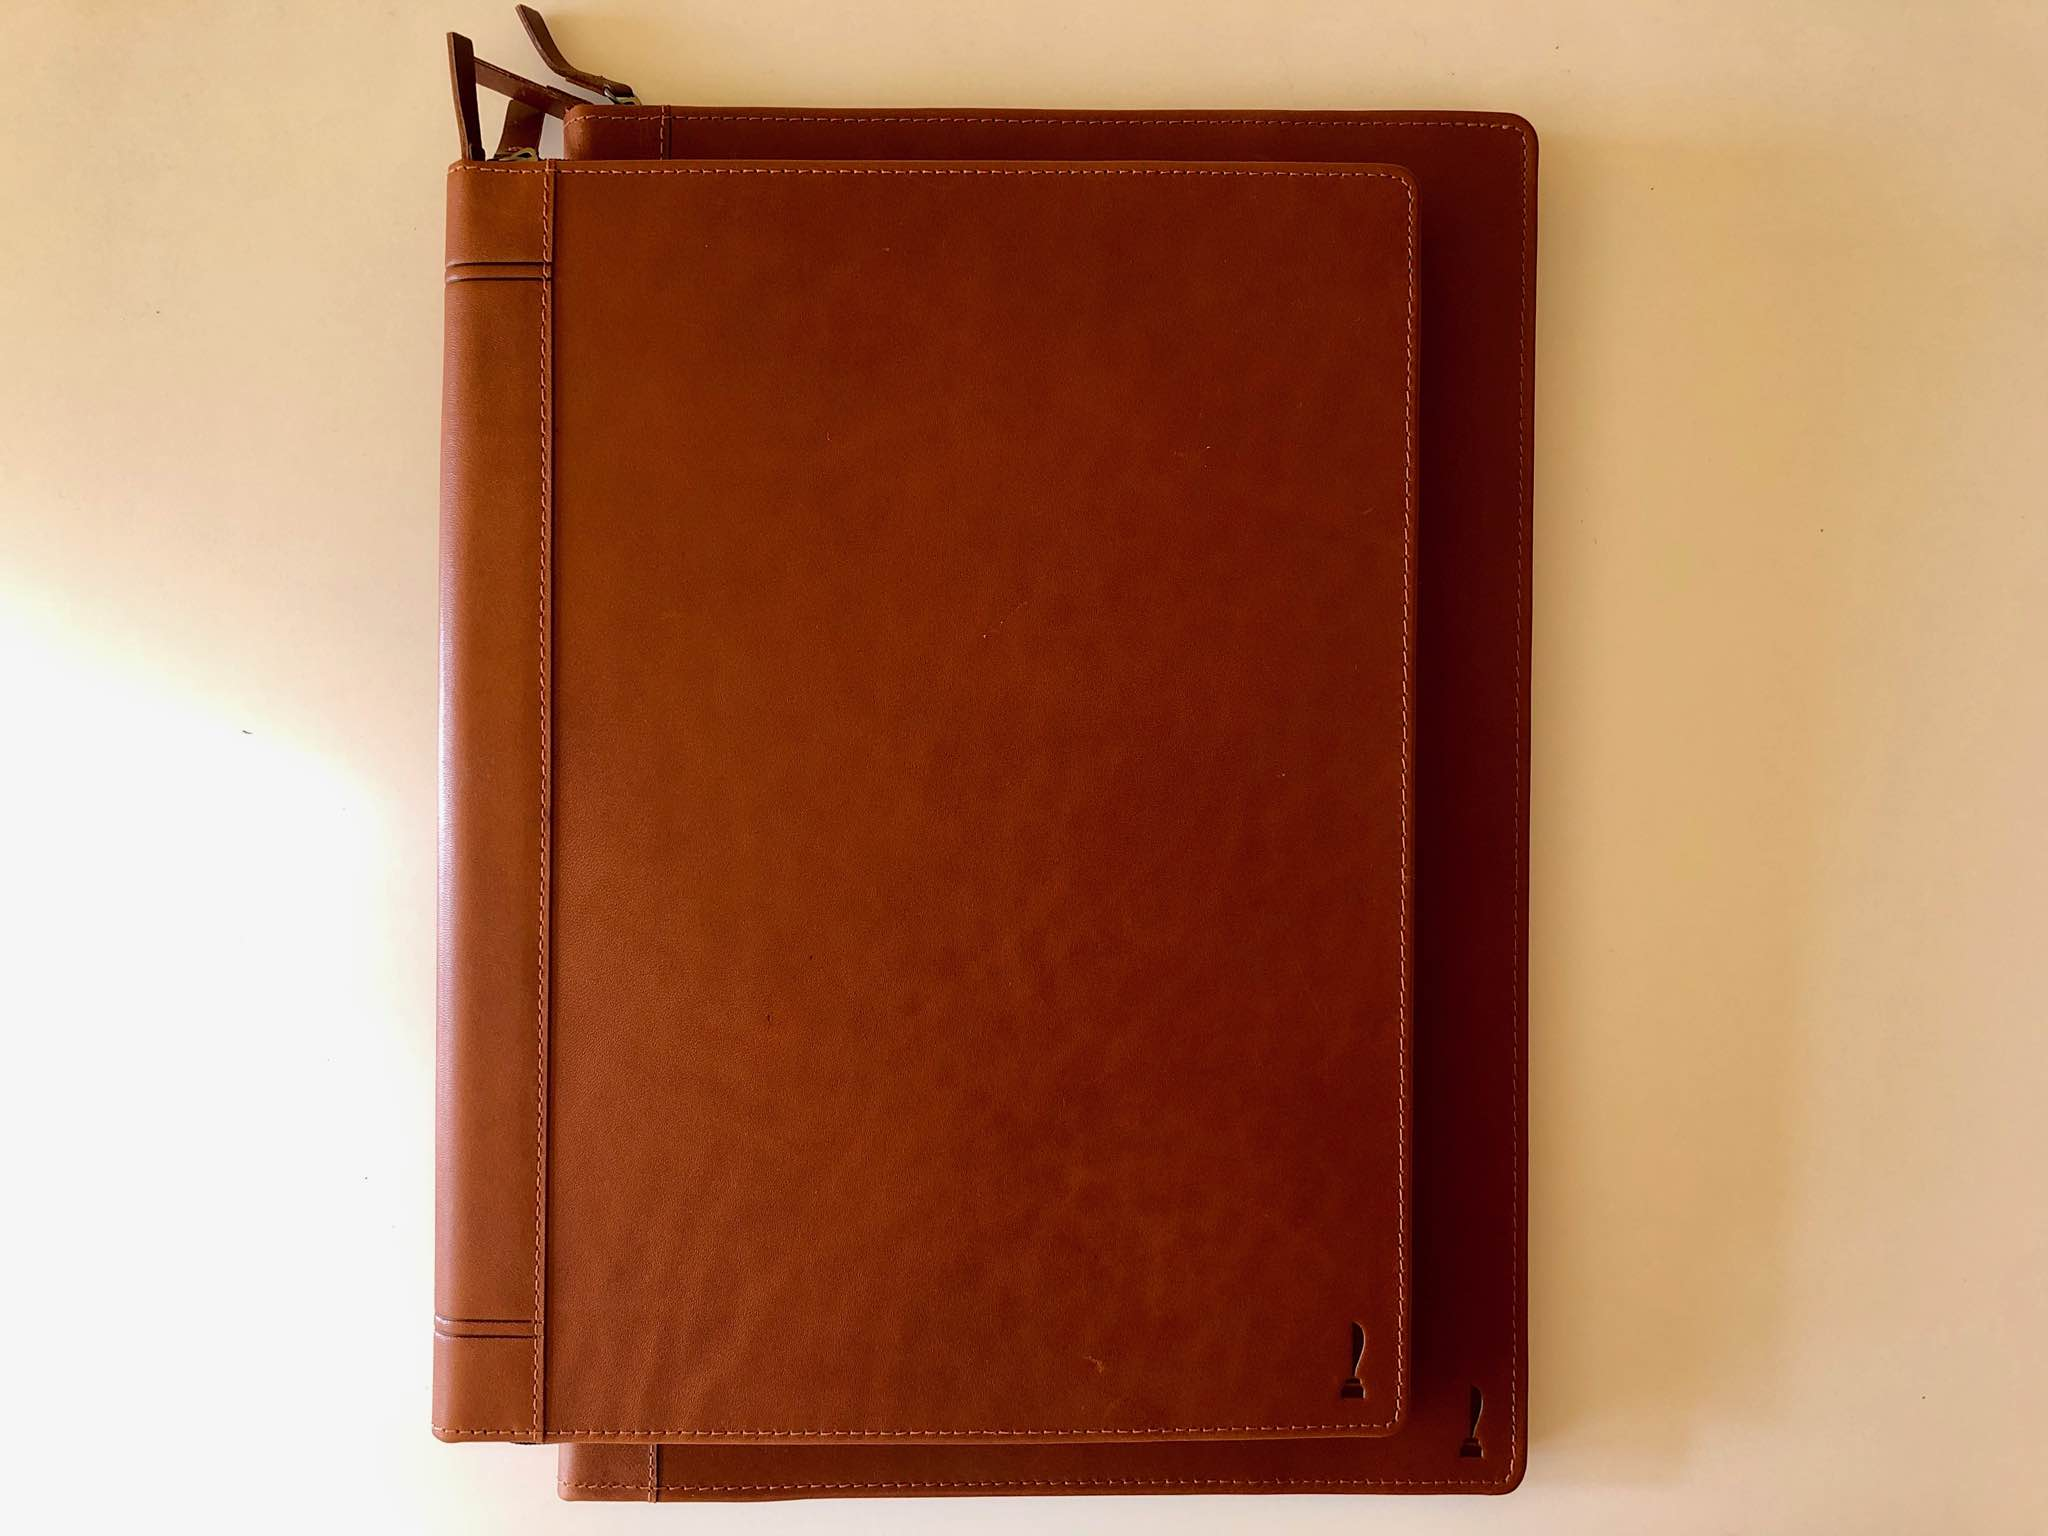 Notebook cases made from leather